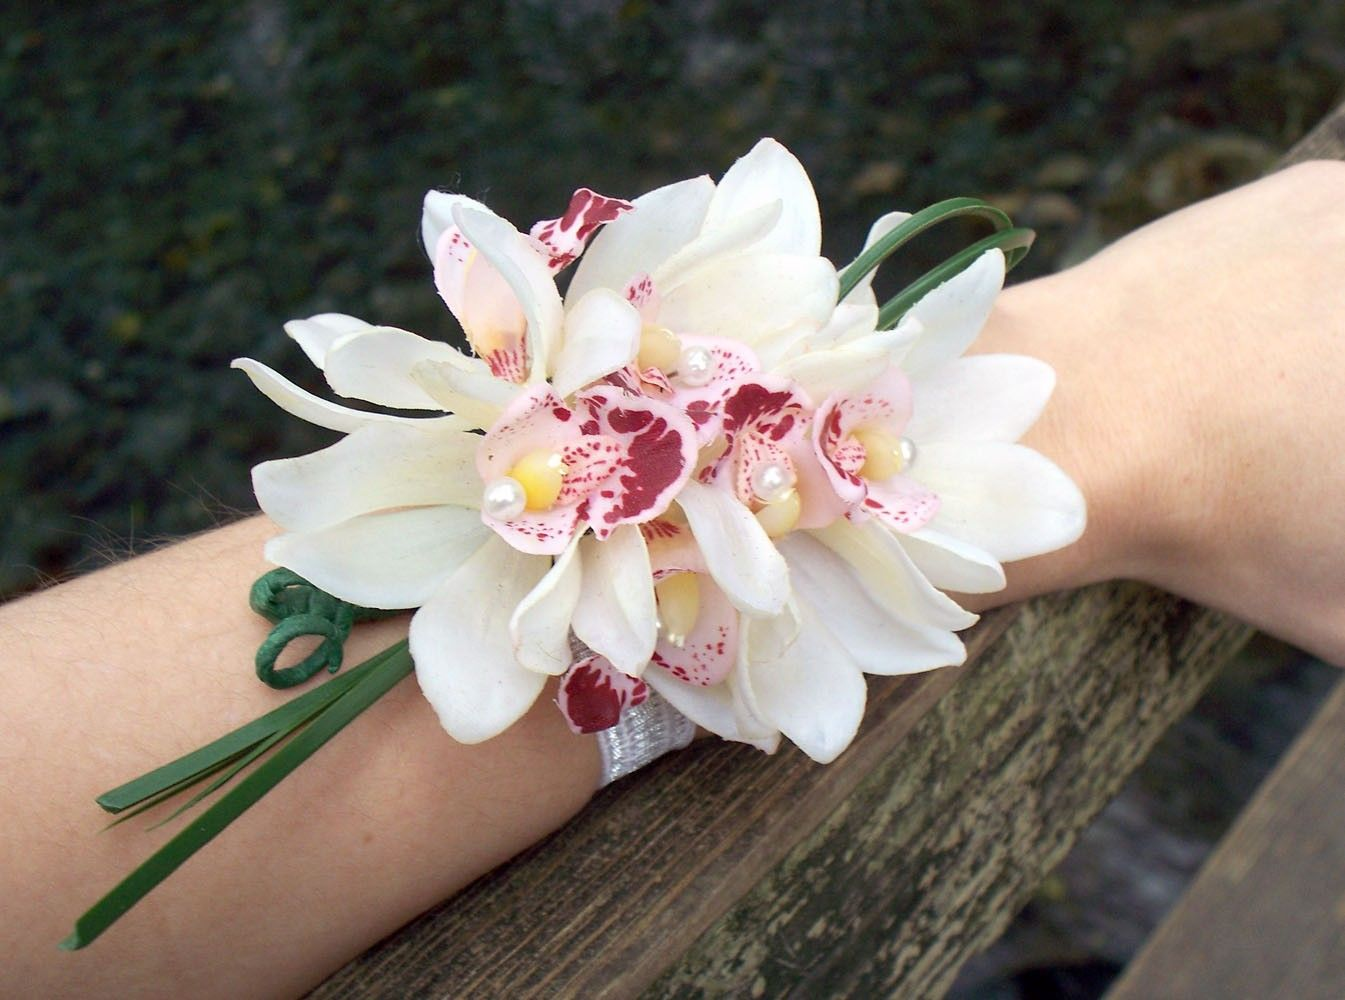 Making Wrist Orchid Corsage